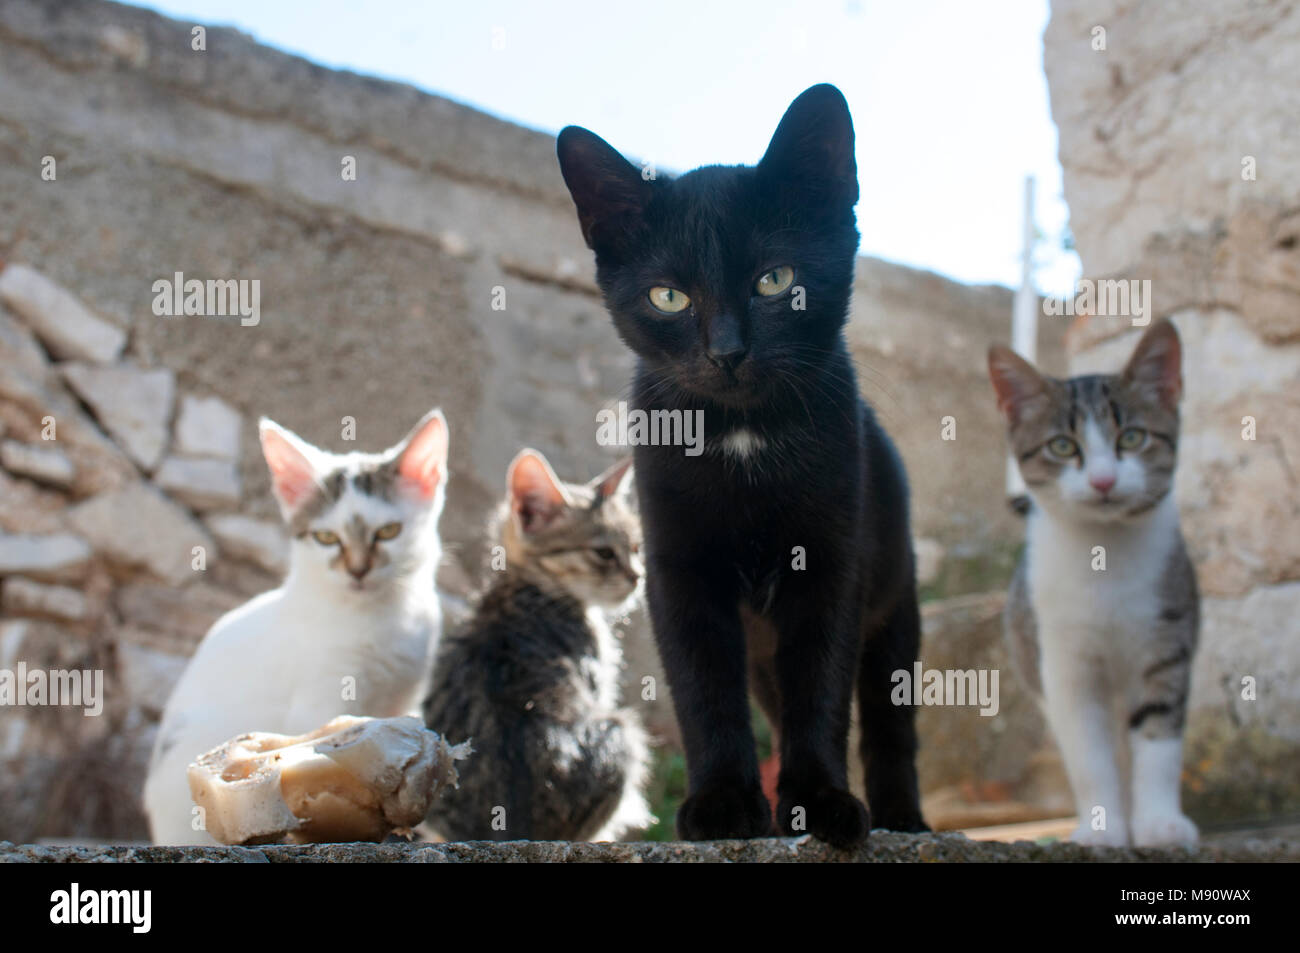 tramp cats - Stock Image